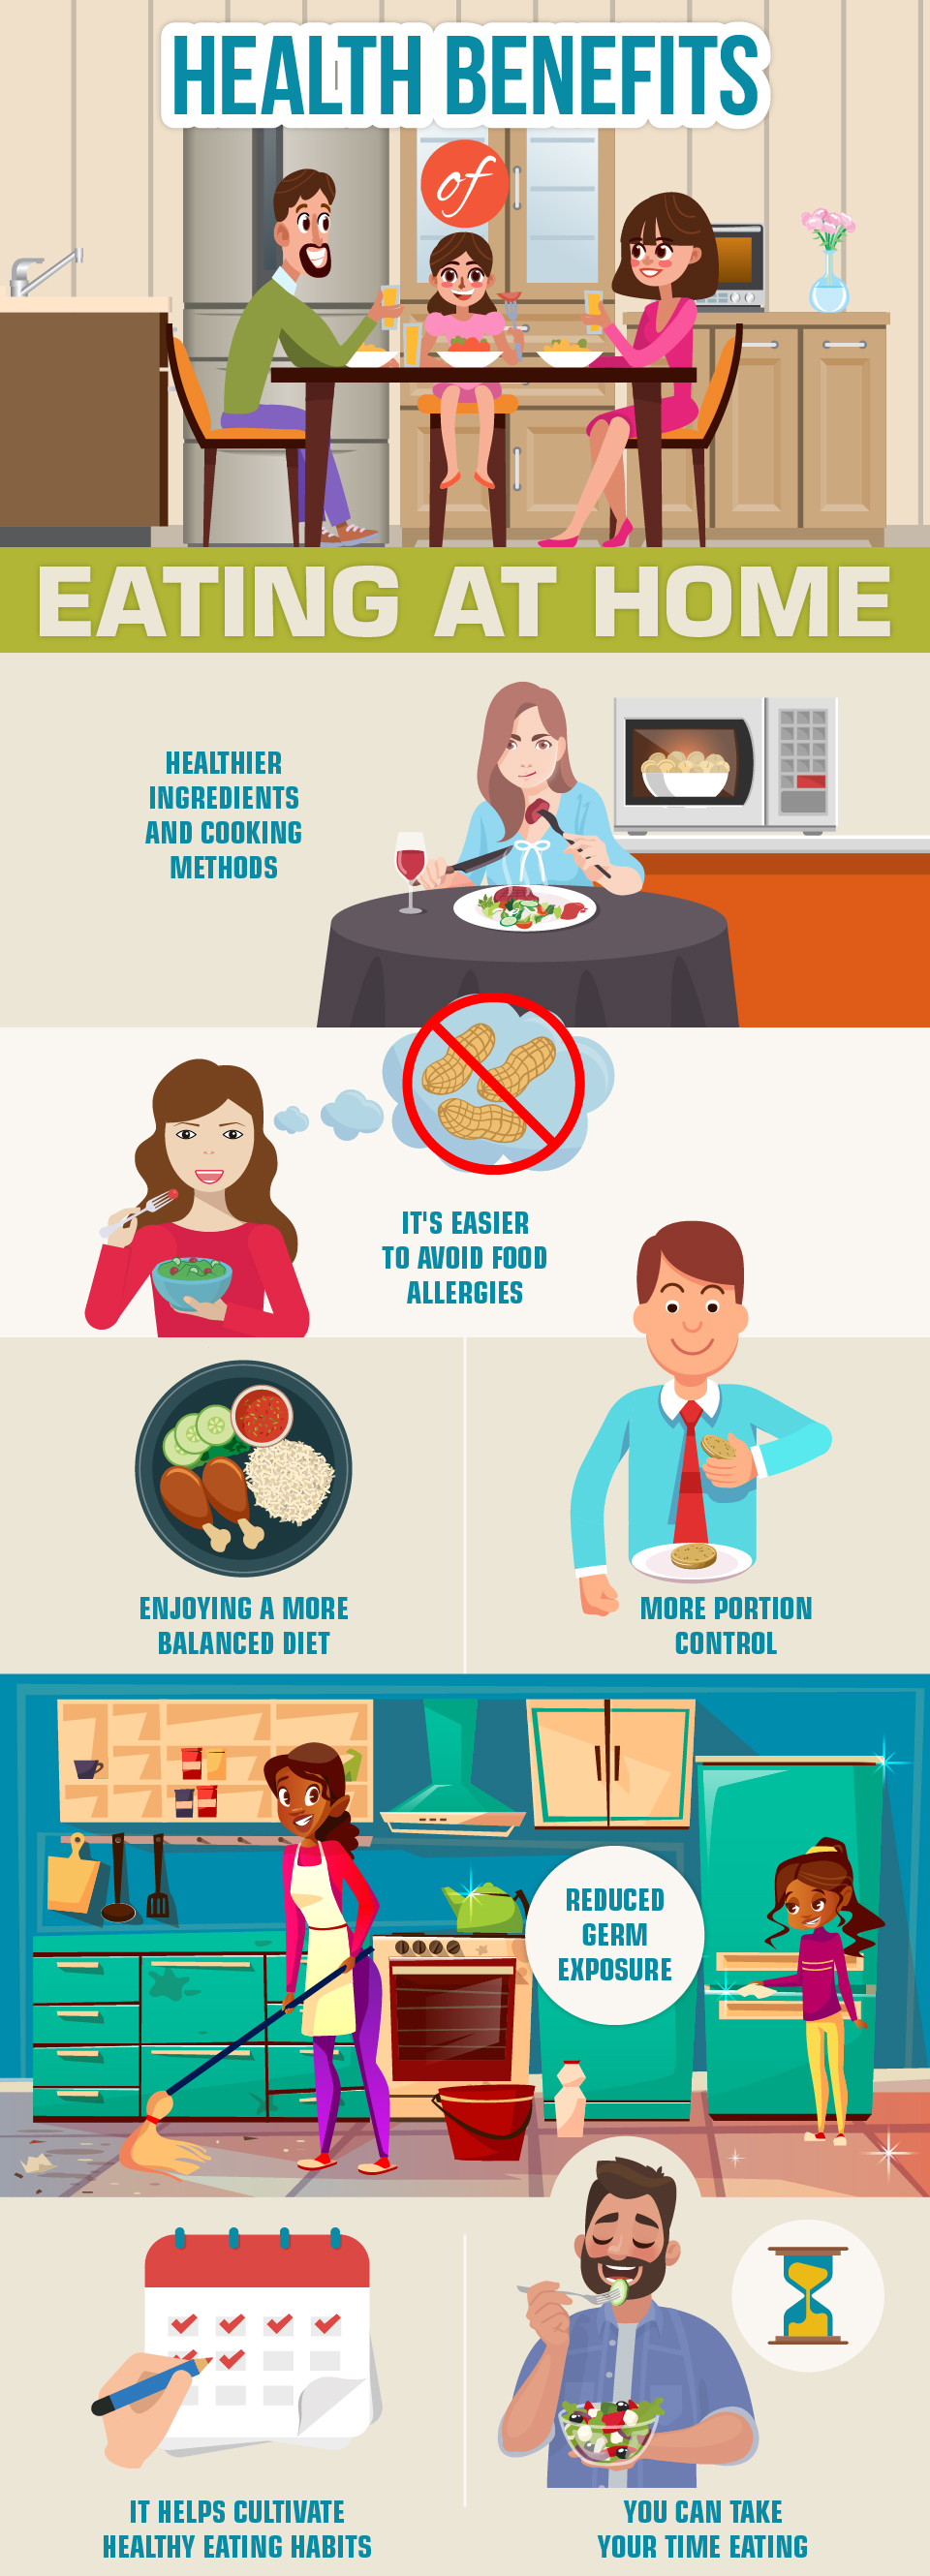 Health Benefits of Eating at Home